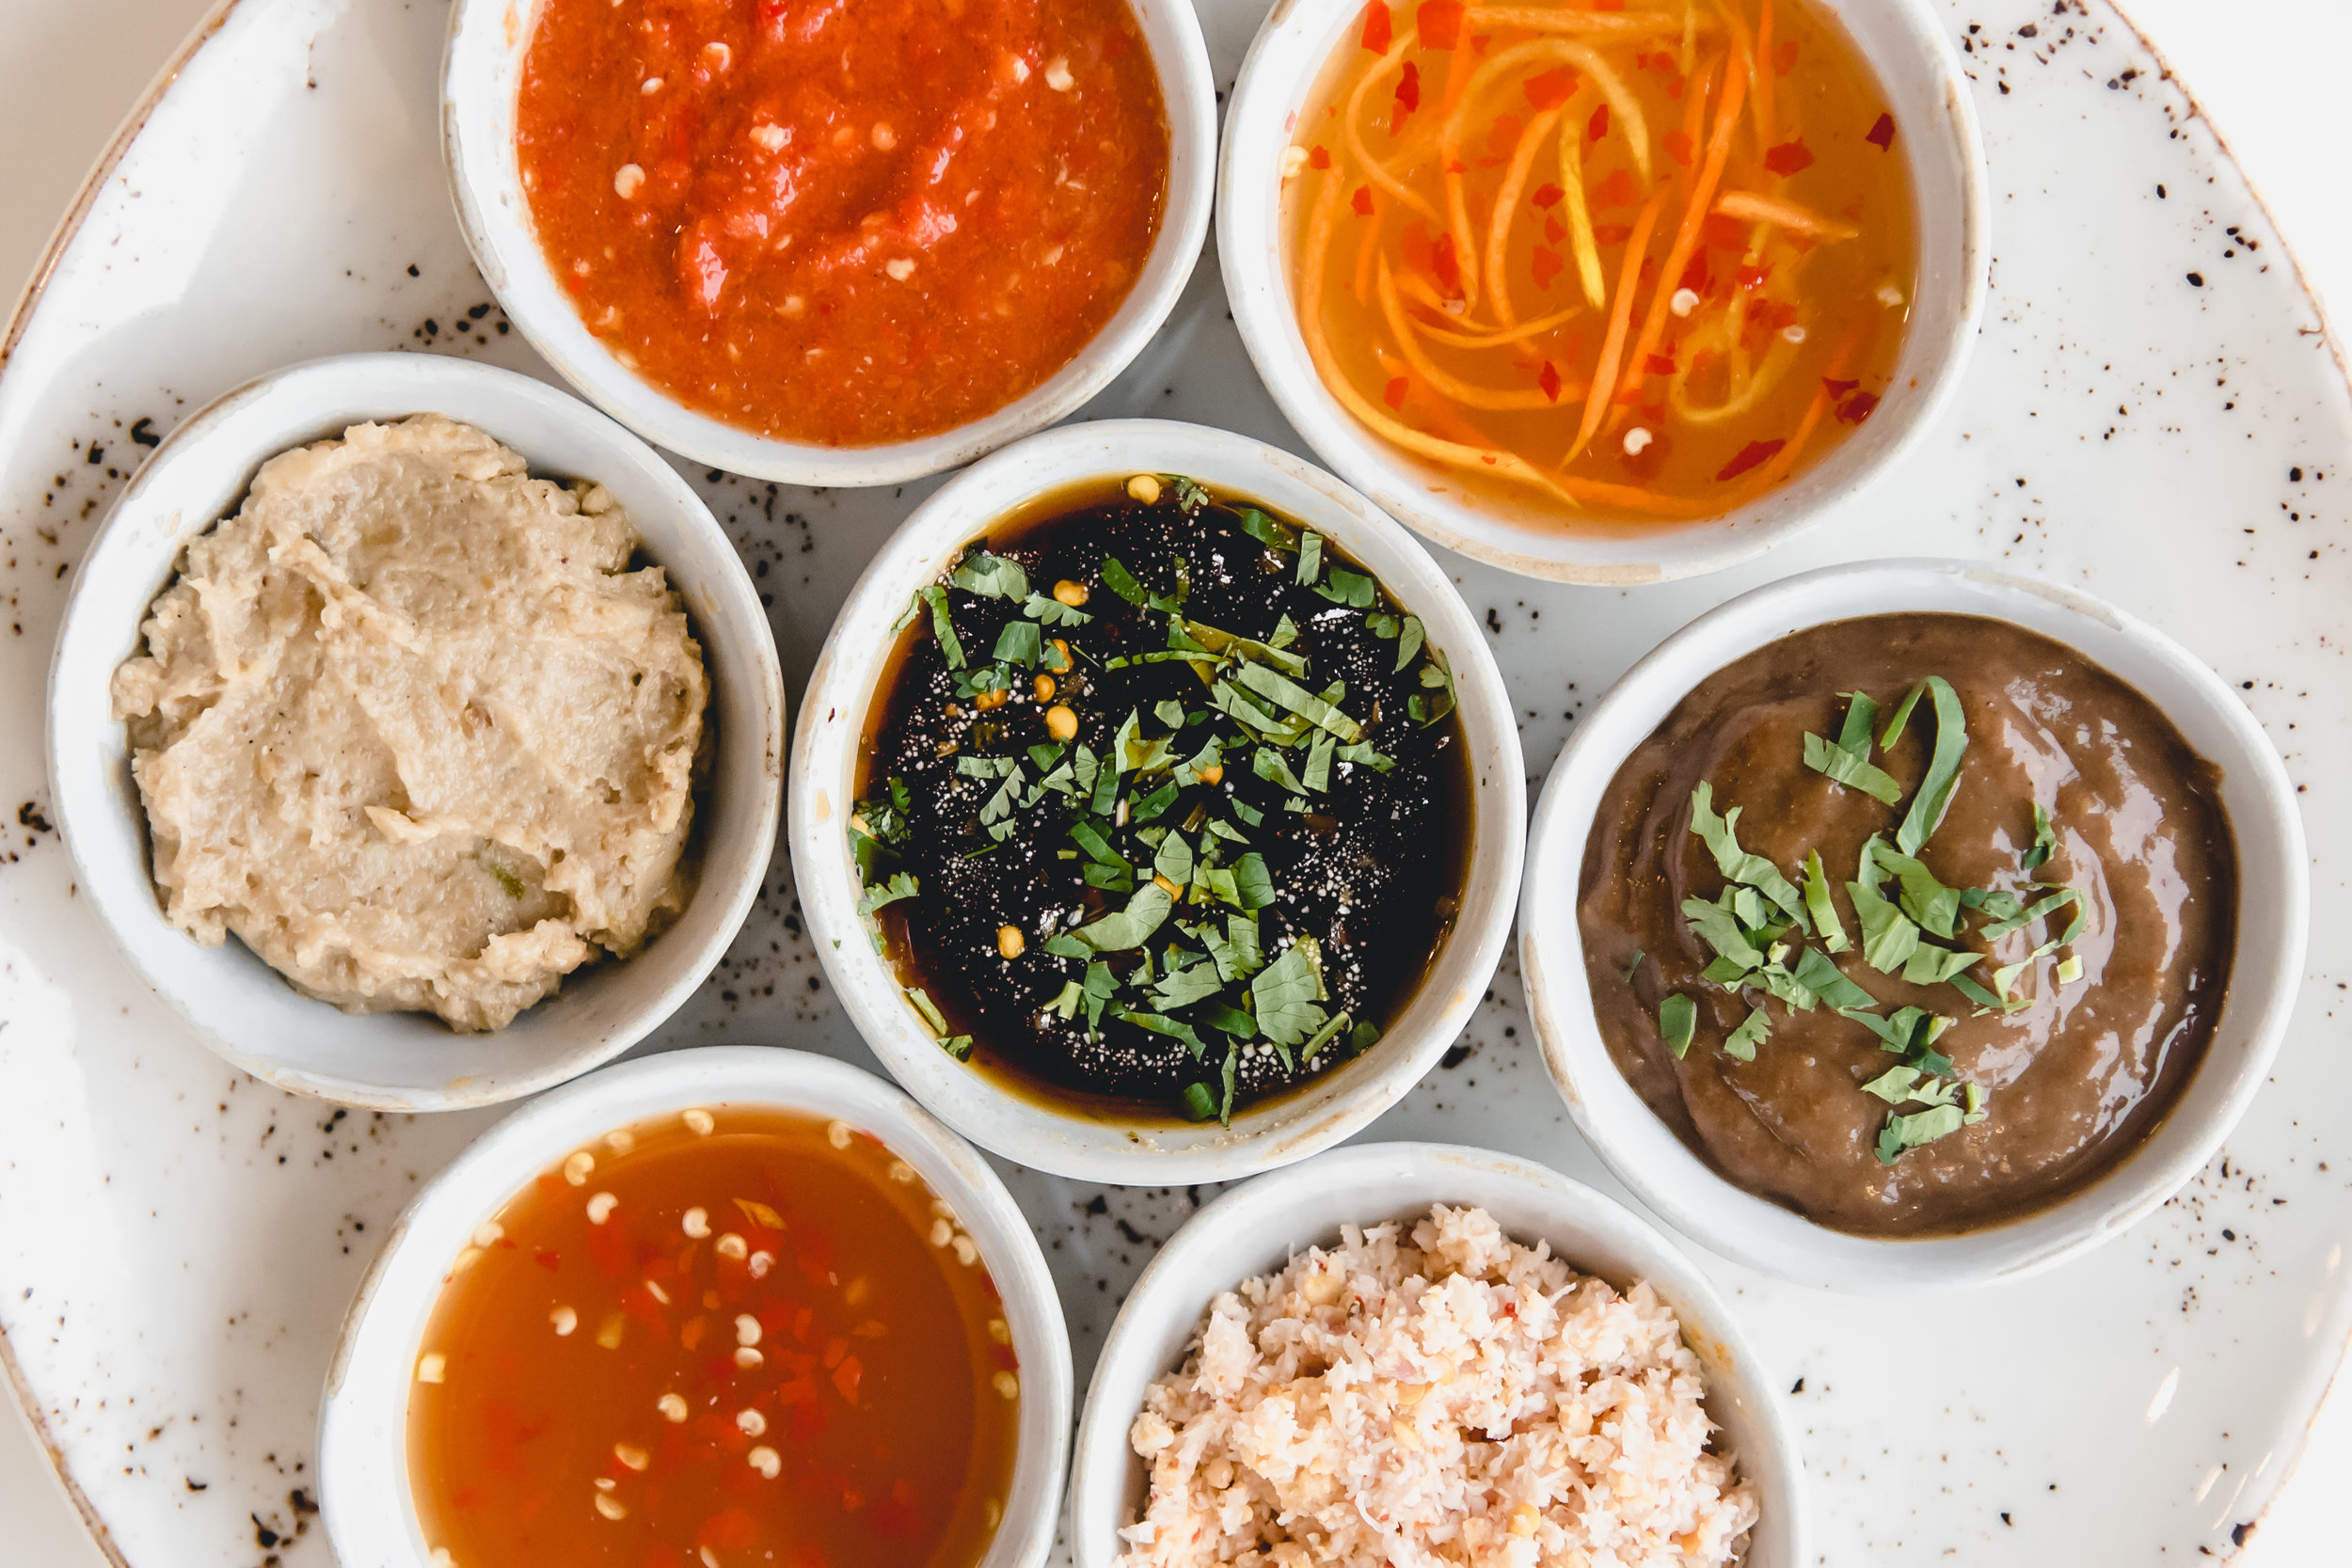 A selection of our sauces and dips for the table